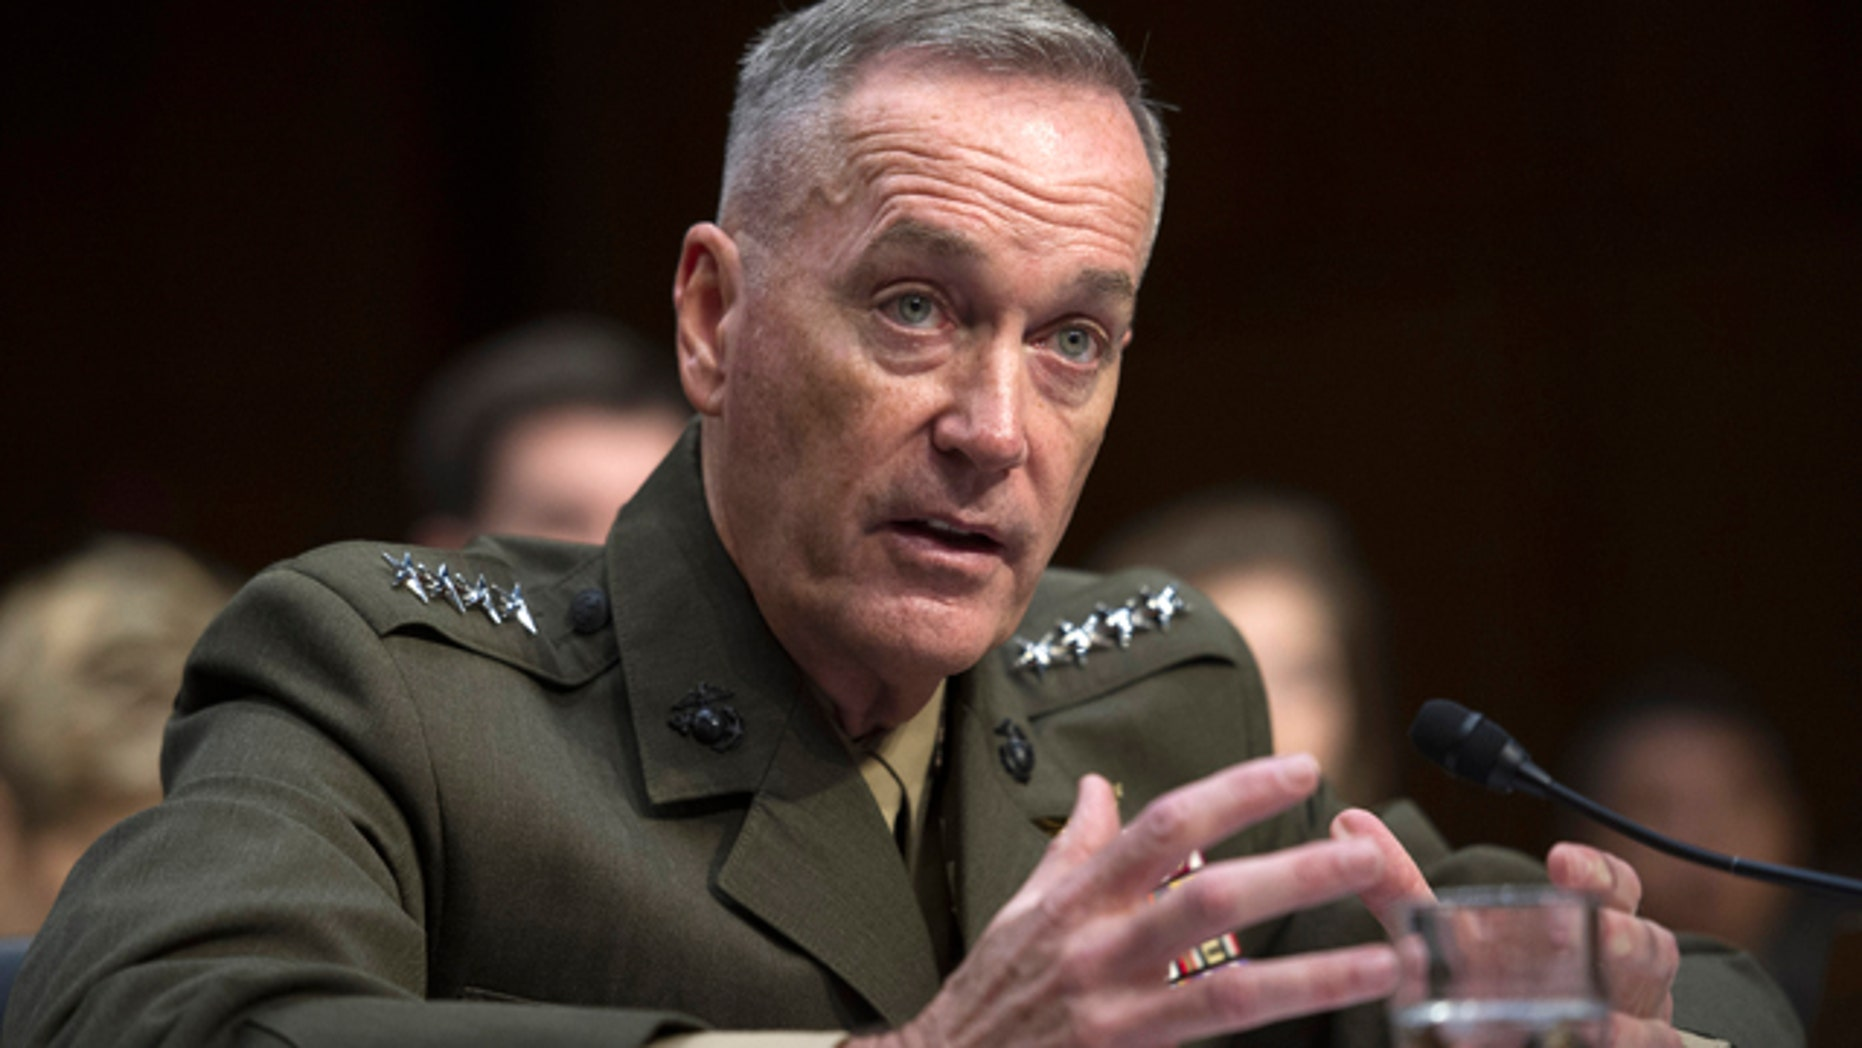 FILE - In this July 9, 2015, file photo, then-Marine Corps Commandant Gen. Joseph Dunford, Jr., testifies during his Senate Armed Services Committee confirmation hearing to become the Chairman of the Joint Chiefs of Staff, on Capitol Hill in Washington. (AP Photo/Cliff Owen, File)